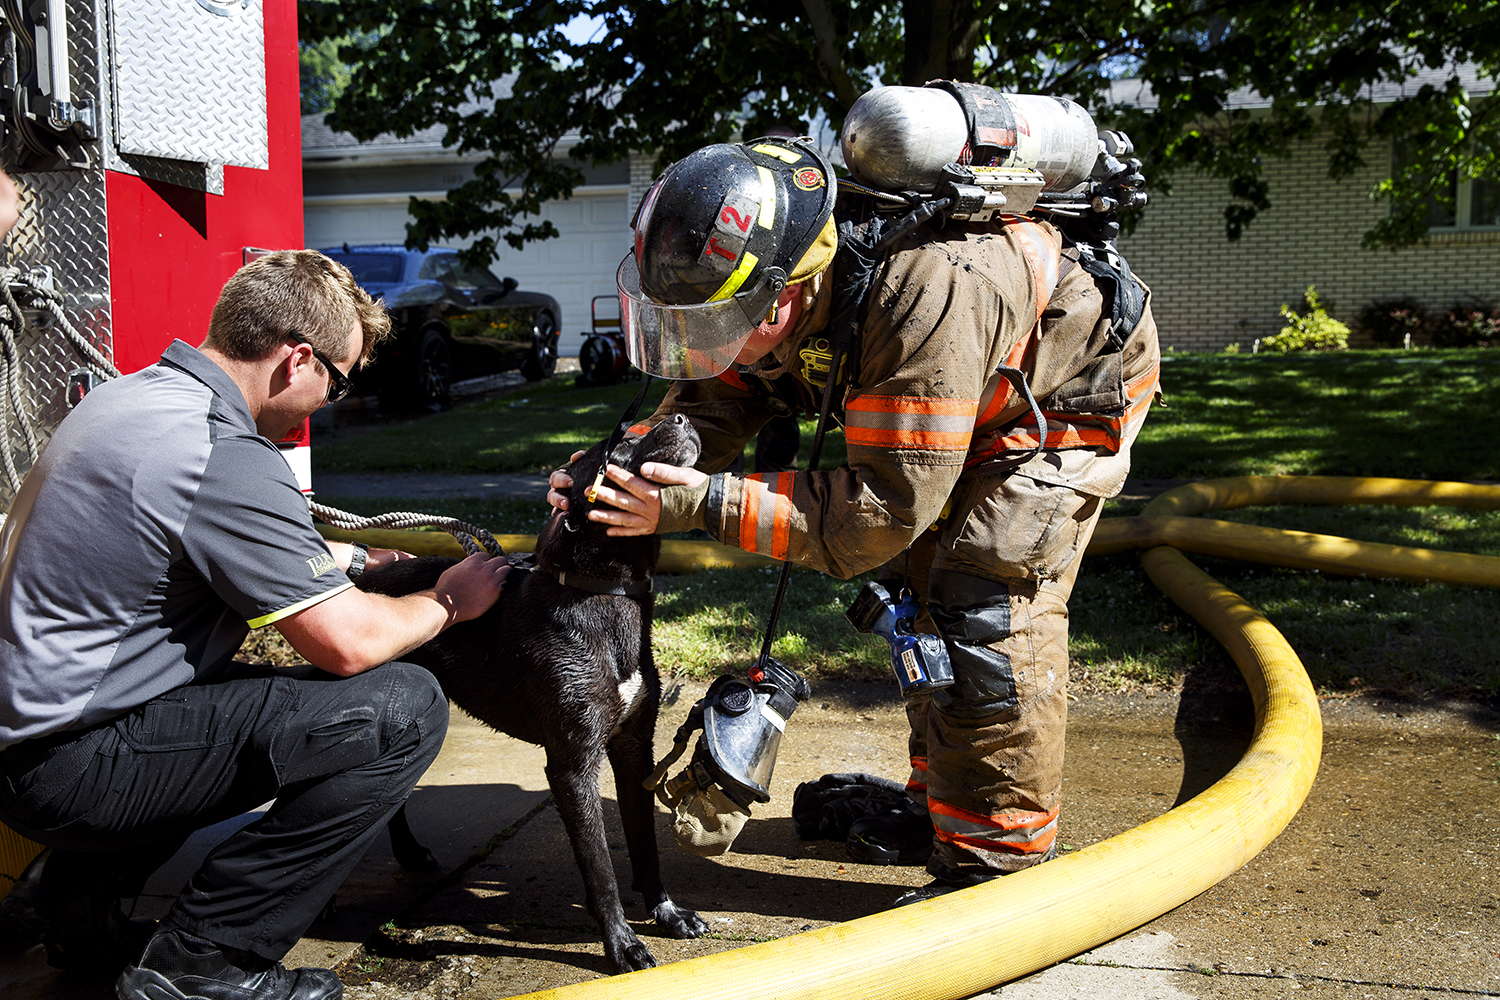 Eric Dodd, left, a Springfield Fire Department intern, and firefighter Tyler Hornback comfort a dog that was rescued from a burning home on Springfield's south side June 6. Springfield Fire Chief Barry Helmerichs said heavy flames and thick smoke were shooting from the rear of the home at 1109 Green Meadow Lane when crews arrived shortly after 8:30 a.m. Firefighters were able to get inside and rescue the dog. The owners were not at home. Rich Saal/The State Journal-Register